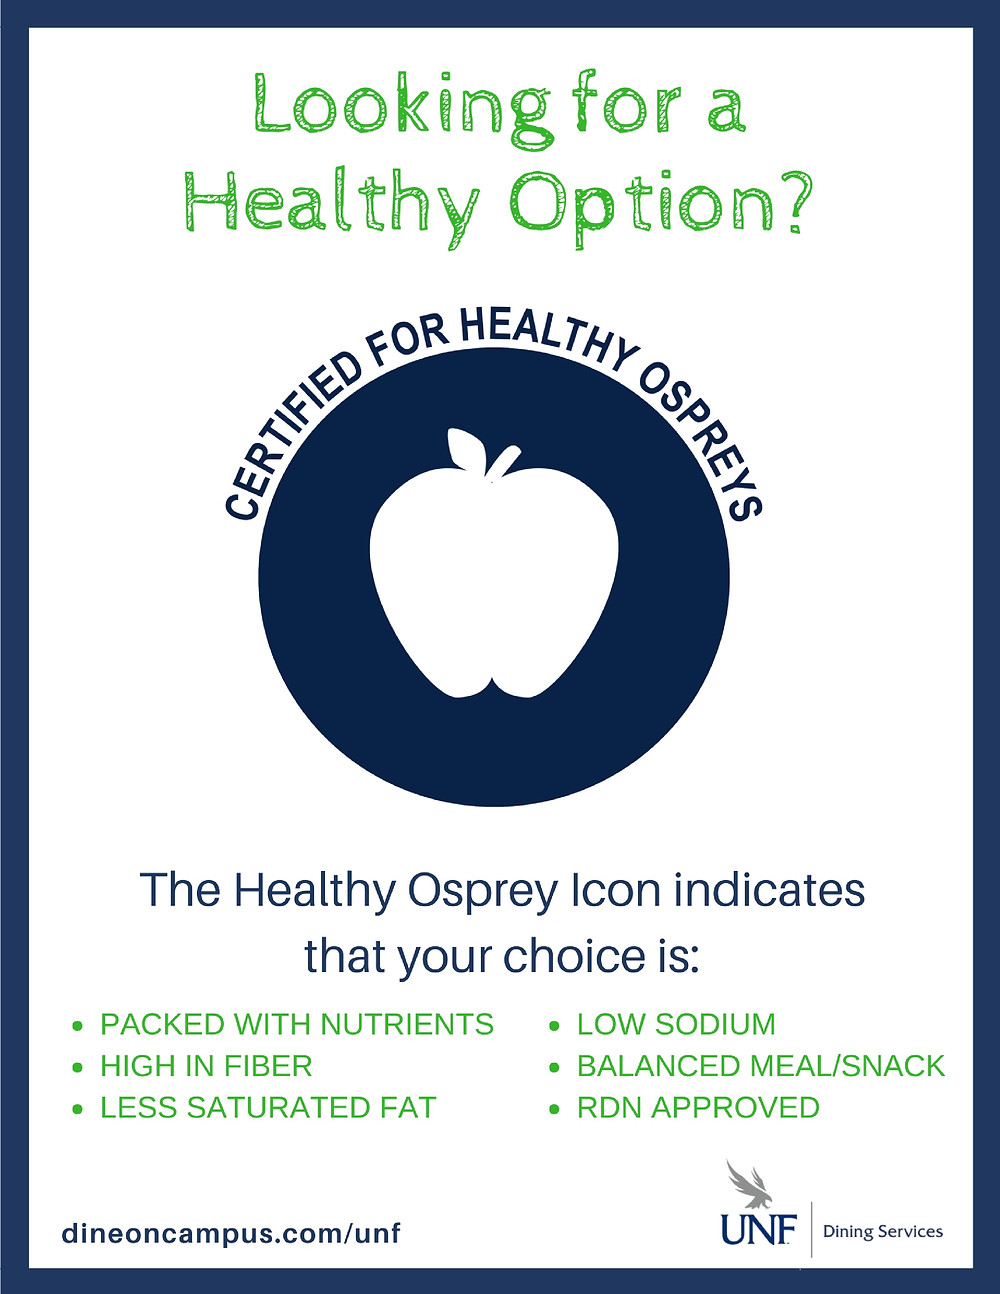 A Certified Healthy Opsreys logo.